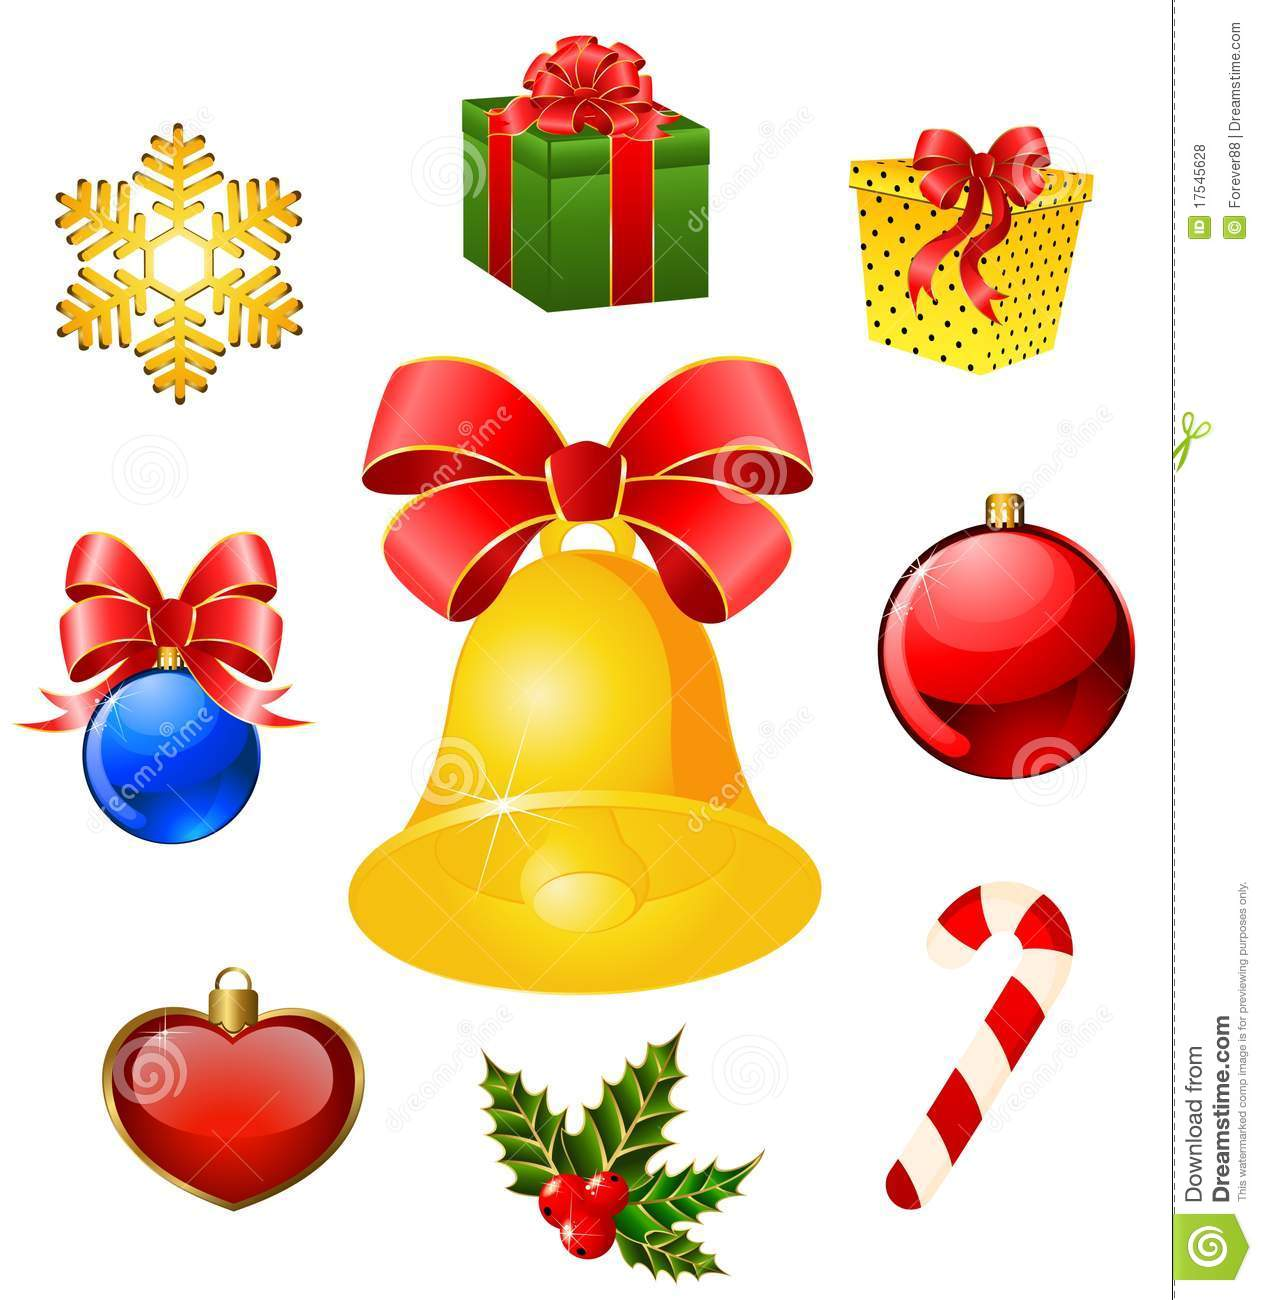 Christmas Objects On The Background Royalty Free Stock